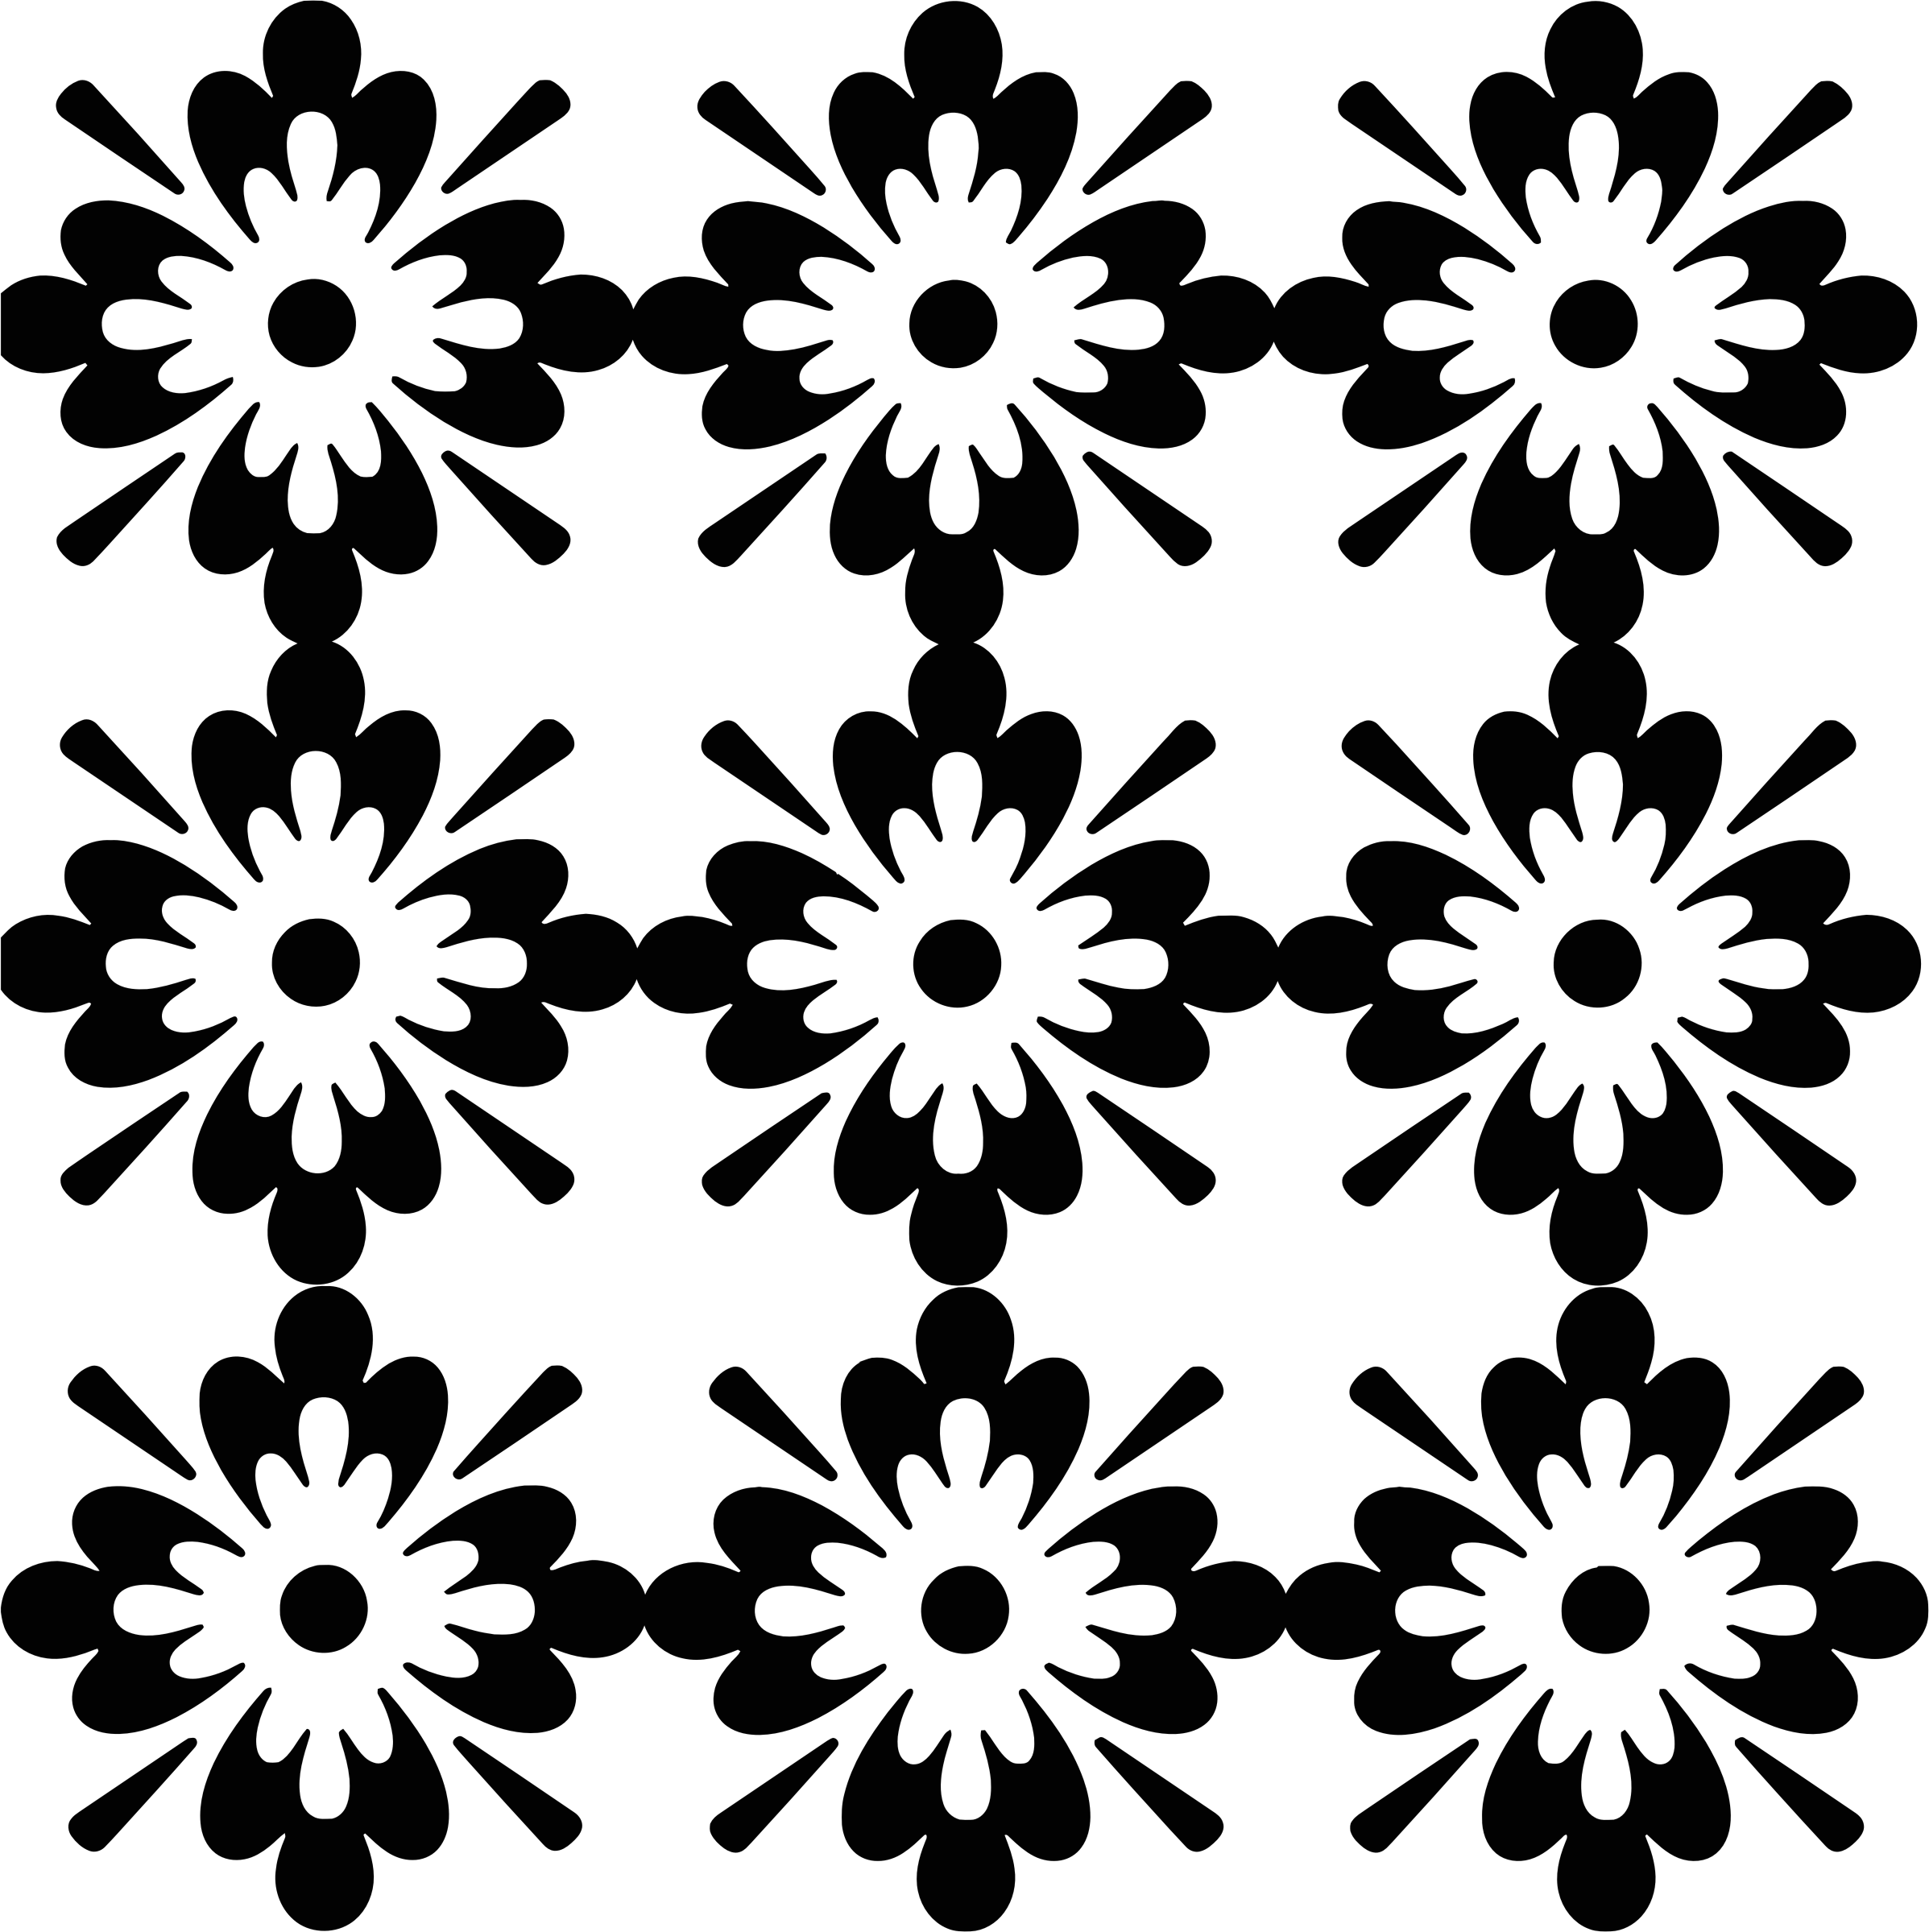 Floral designs patterns png. Clipart black and white